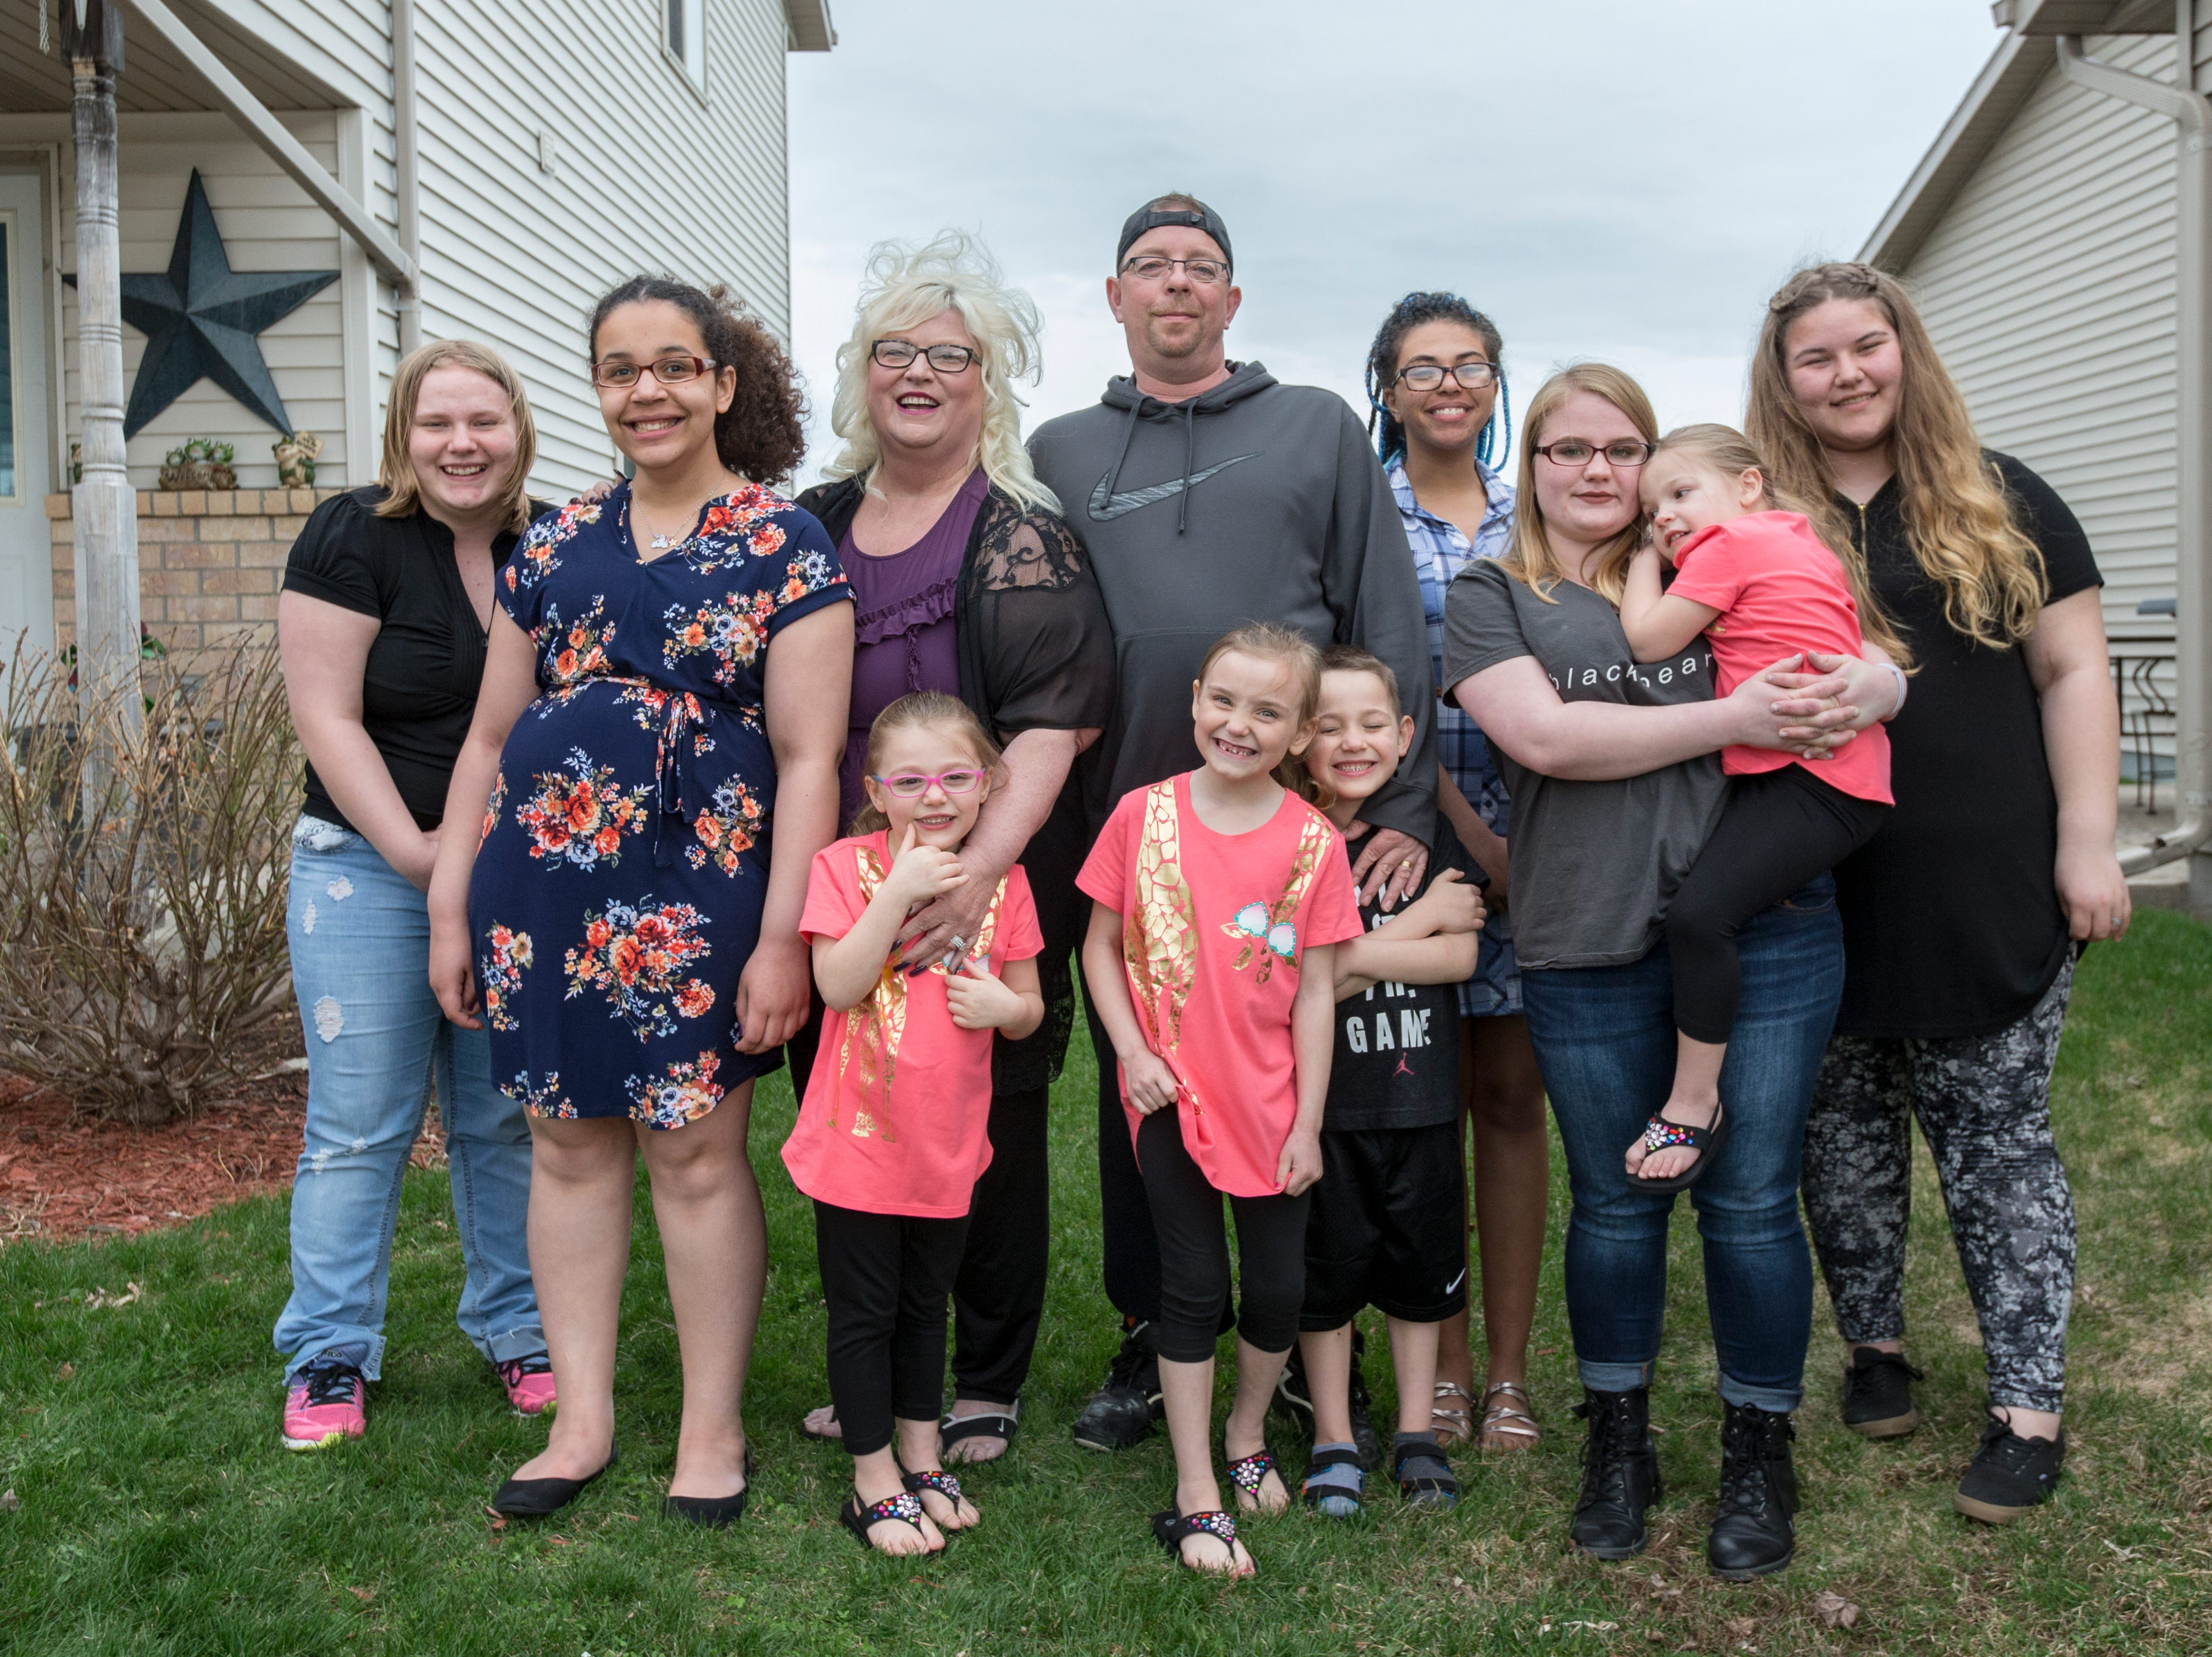 Becky and Rob Brooks, center, pose for a portrait with their family in front of their home Thursday, May 3, 2018, in Manitowoc, Wis. From left, Danyell, 17; Isabella, 16; Anna, 4; October, 6; Brian, 6; Cristel, 20; Skylar, 17; Charlie, 3; and their granddaughter Bianca Michel, 13. All are legally adopted except for October who has been reunited with her mother but is still thought of as family. The Brooks have taken in 14 foster children over the years and adopted nine of them.